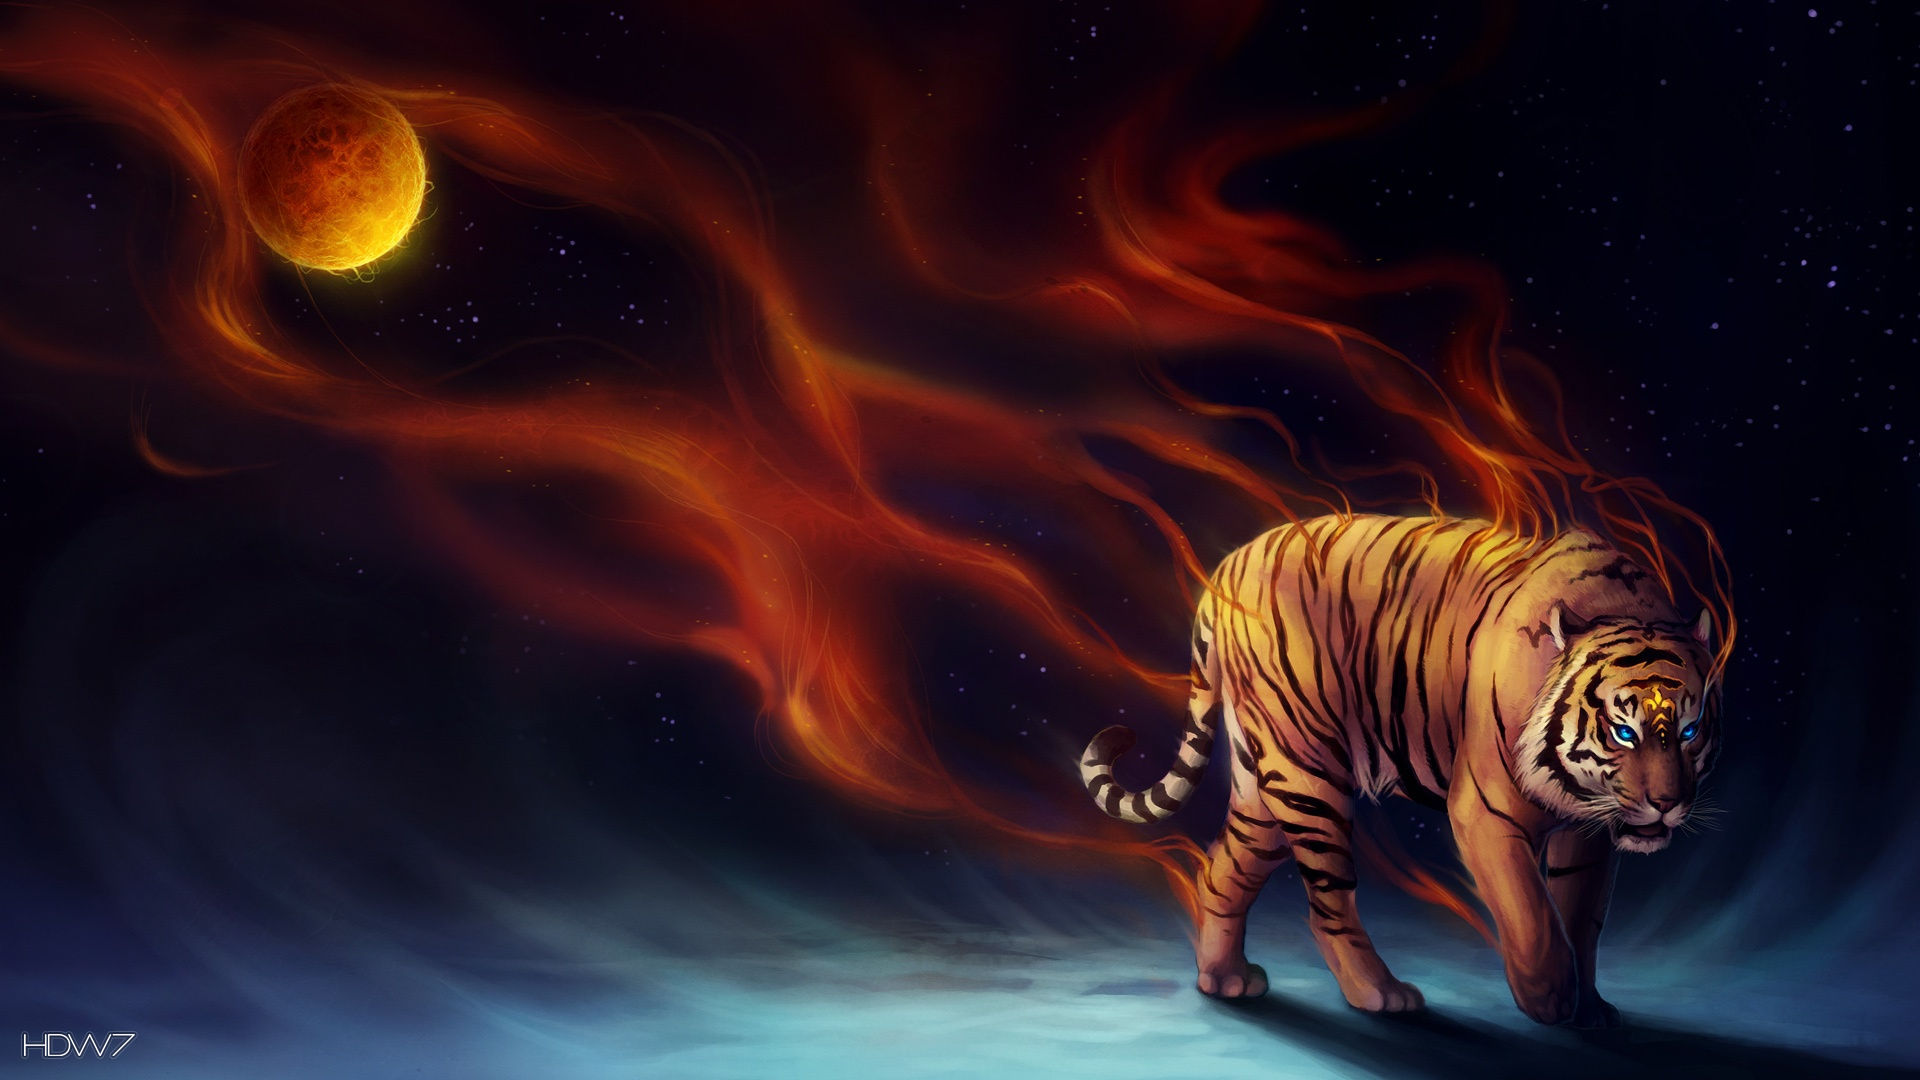 Power Tiger Abstract Art 1920x1080 Hd Wallpaper Gallery 36